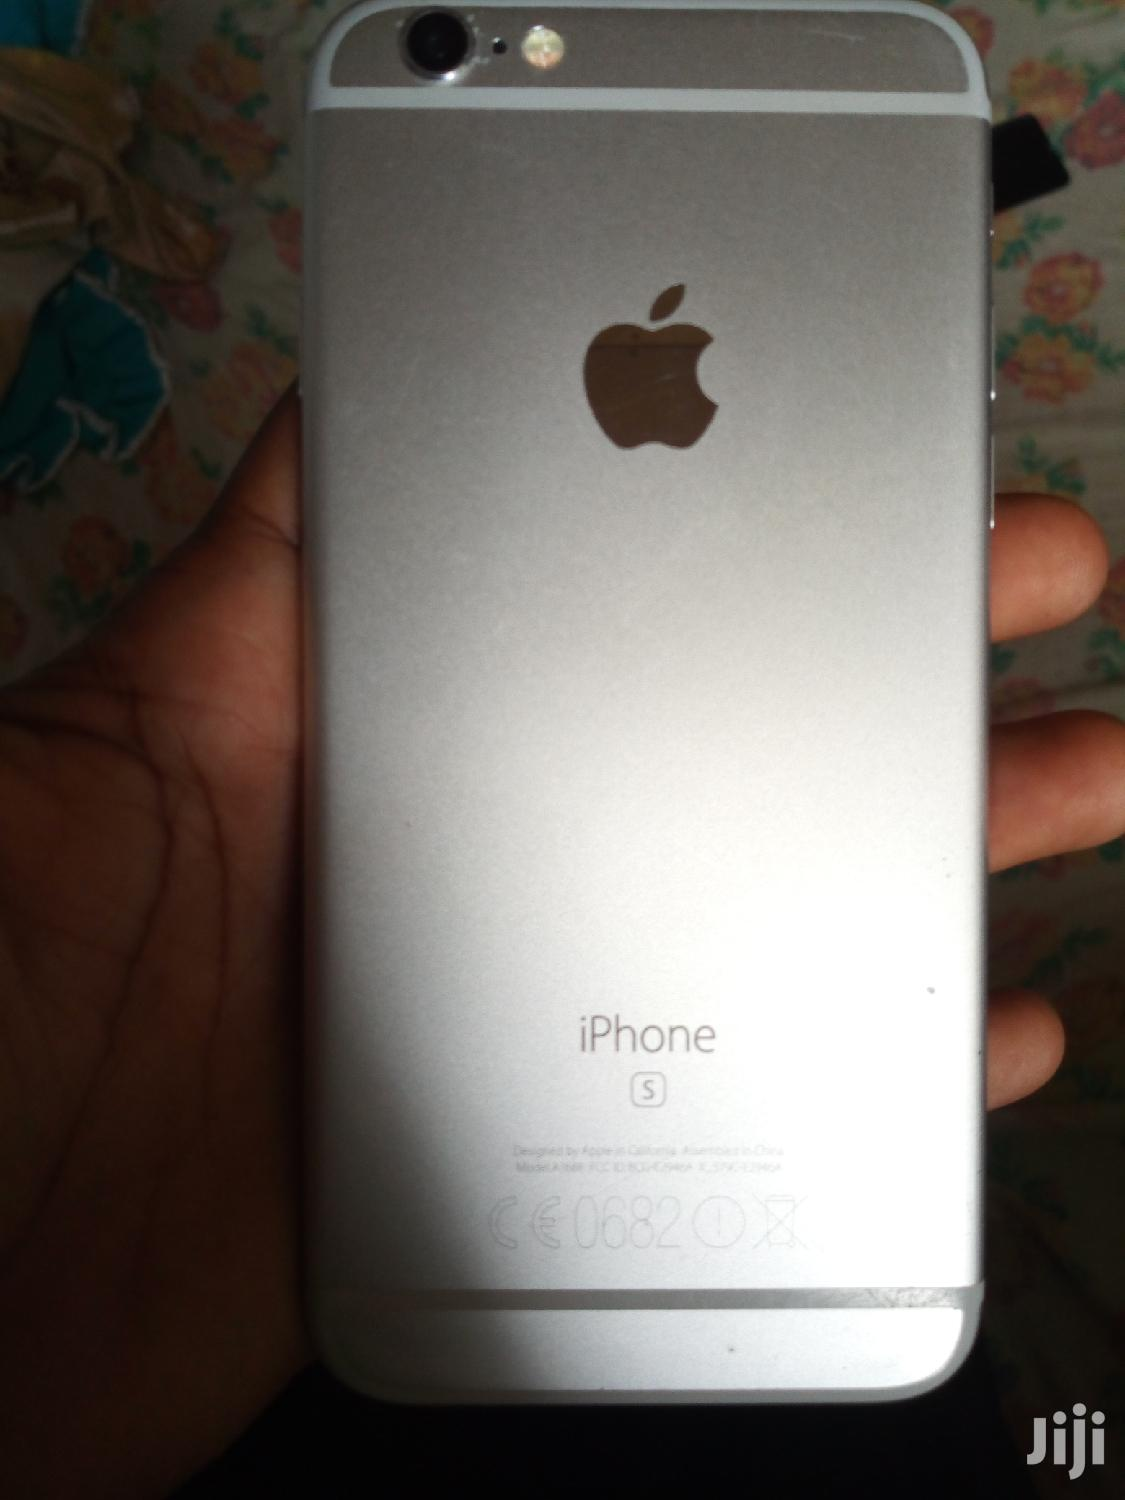 Archive: Apple iPhone 6s 16 GB Gold